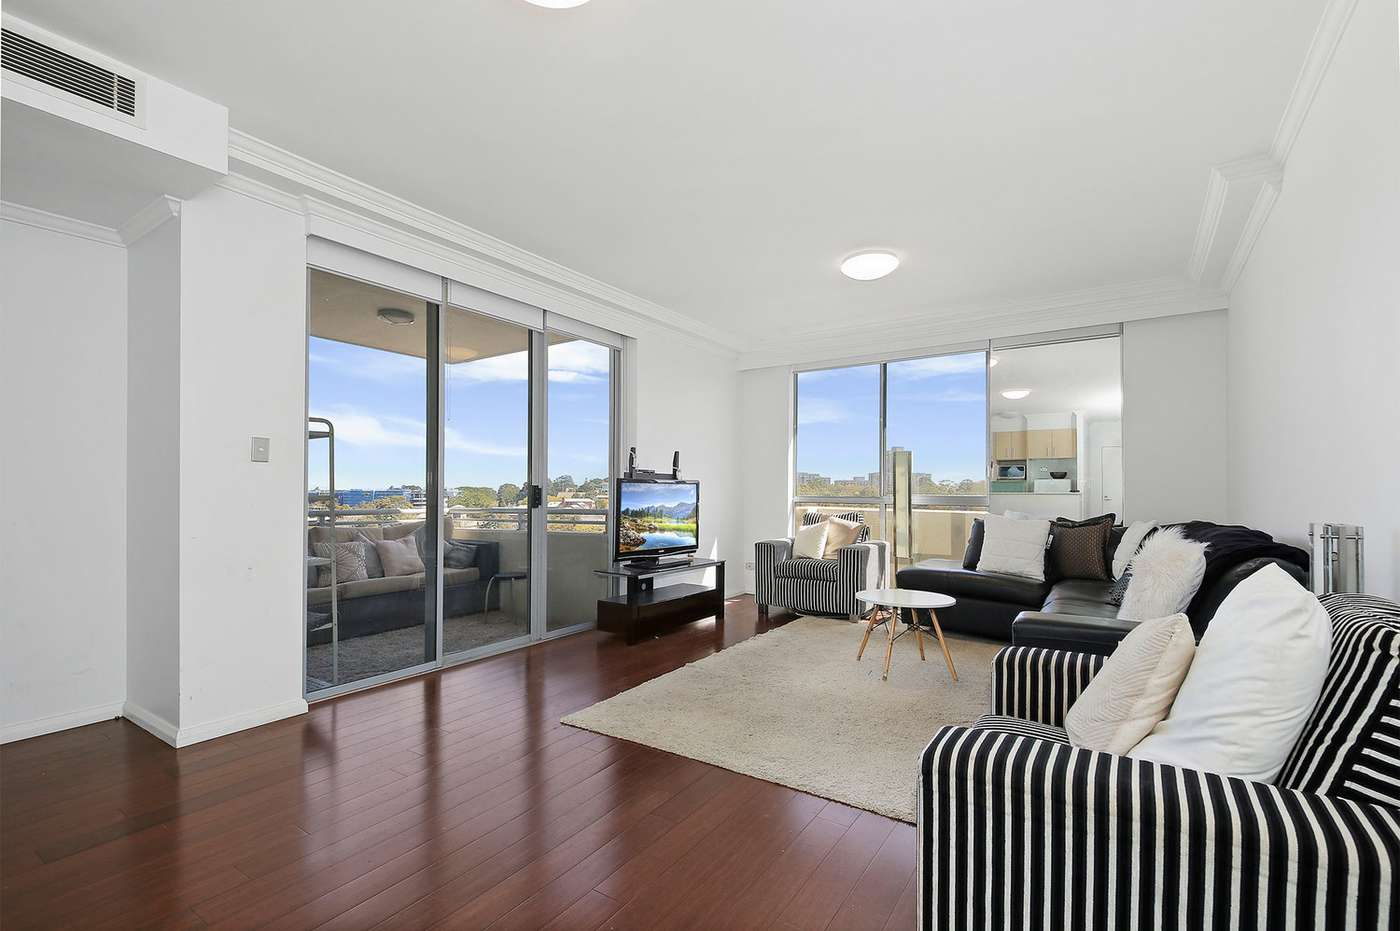 Main view of Homely apartment listing, 211/806 Bourke Street, Waterloo, NSW 2017